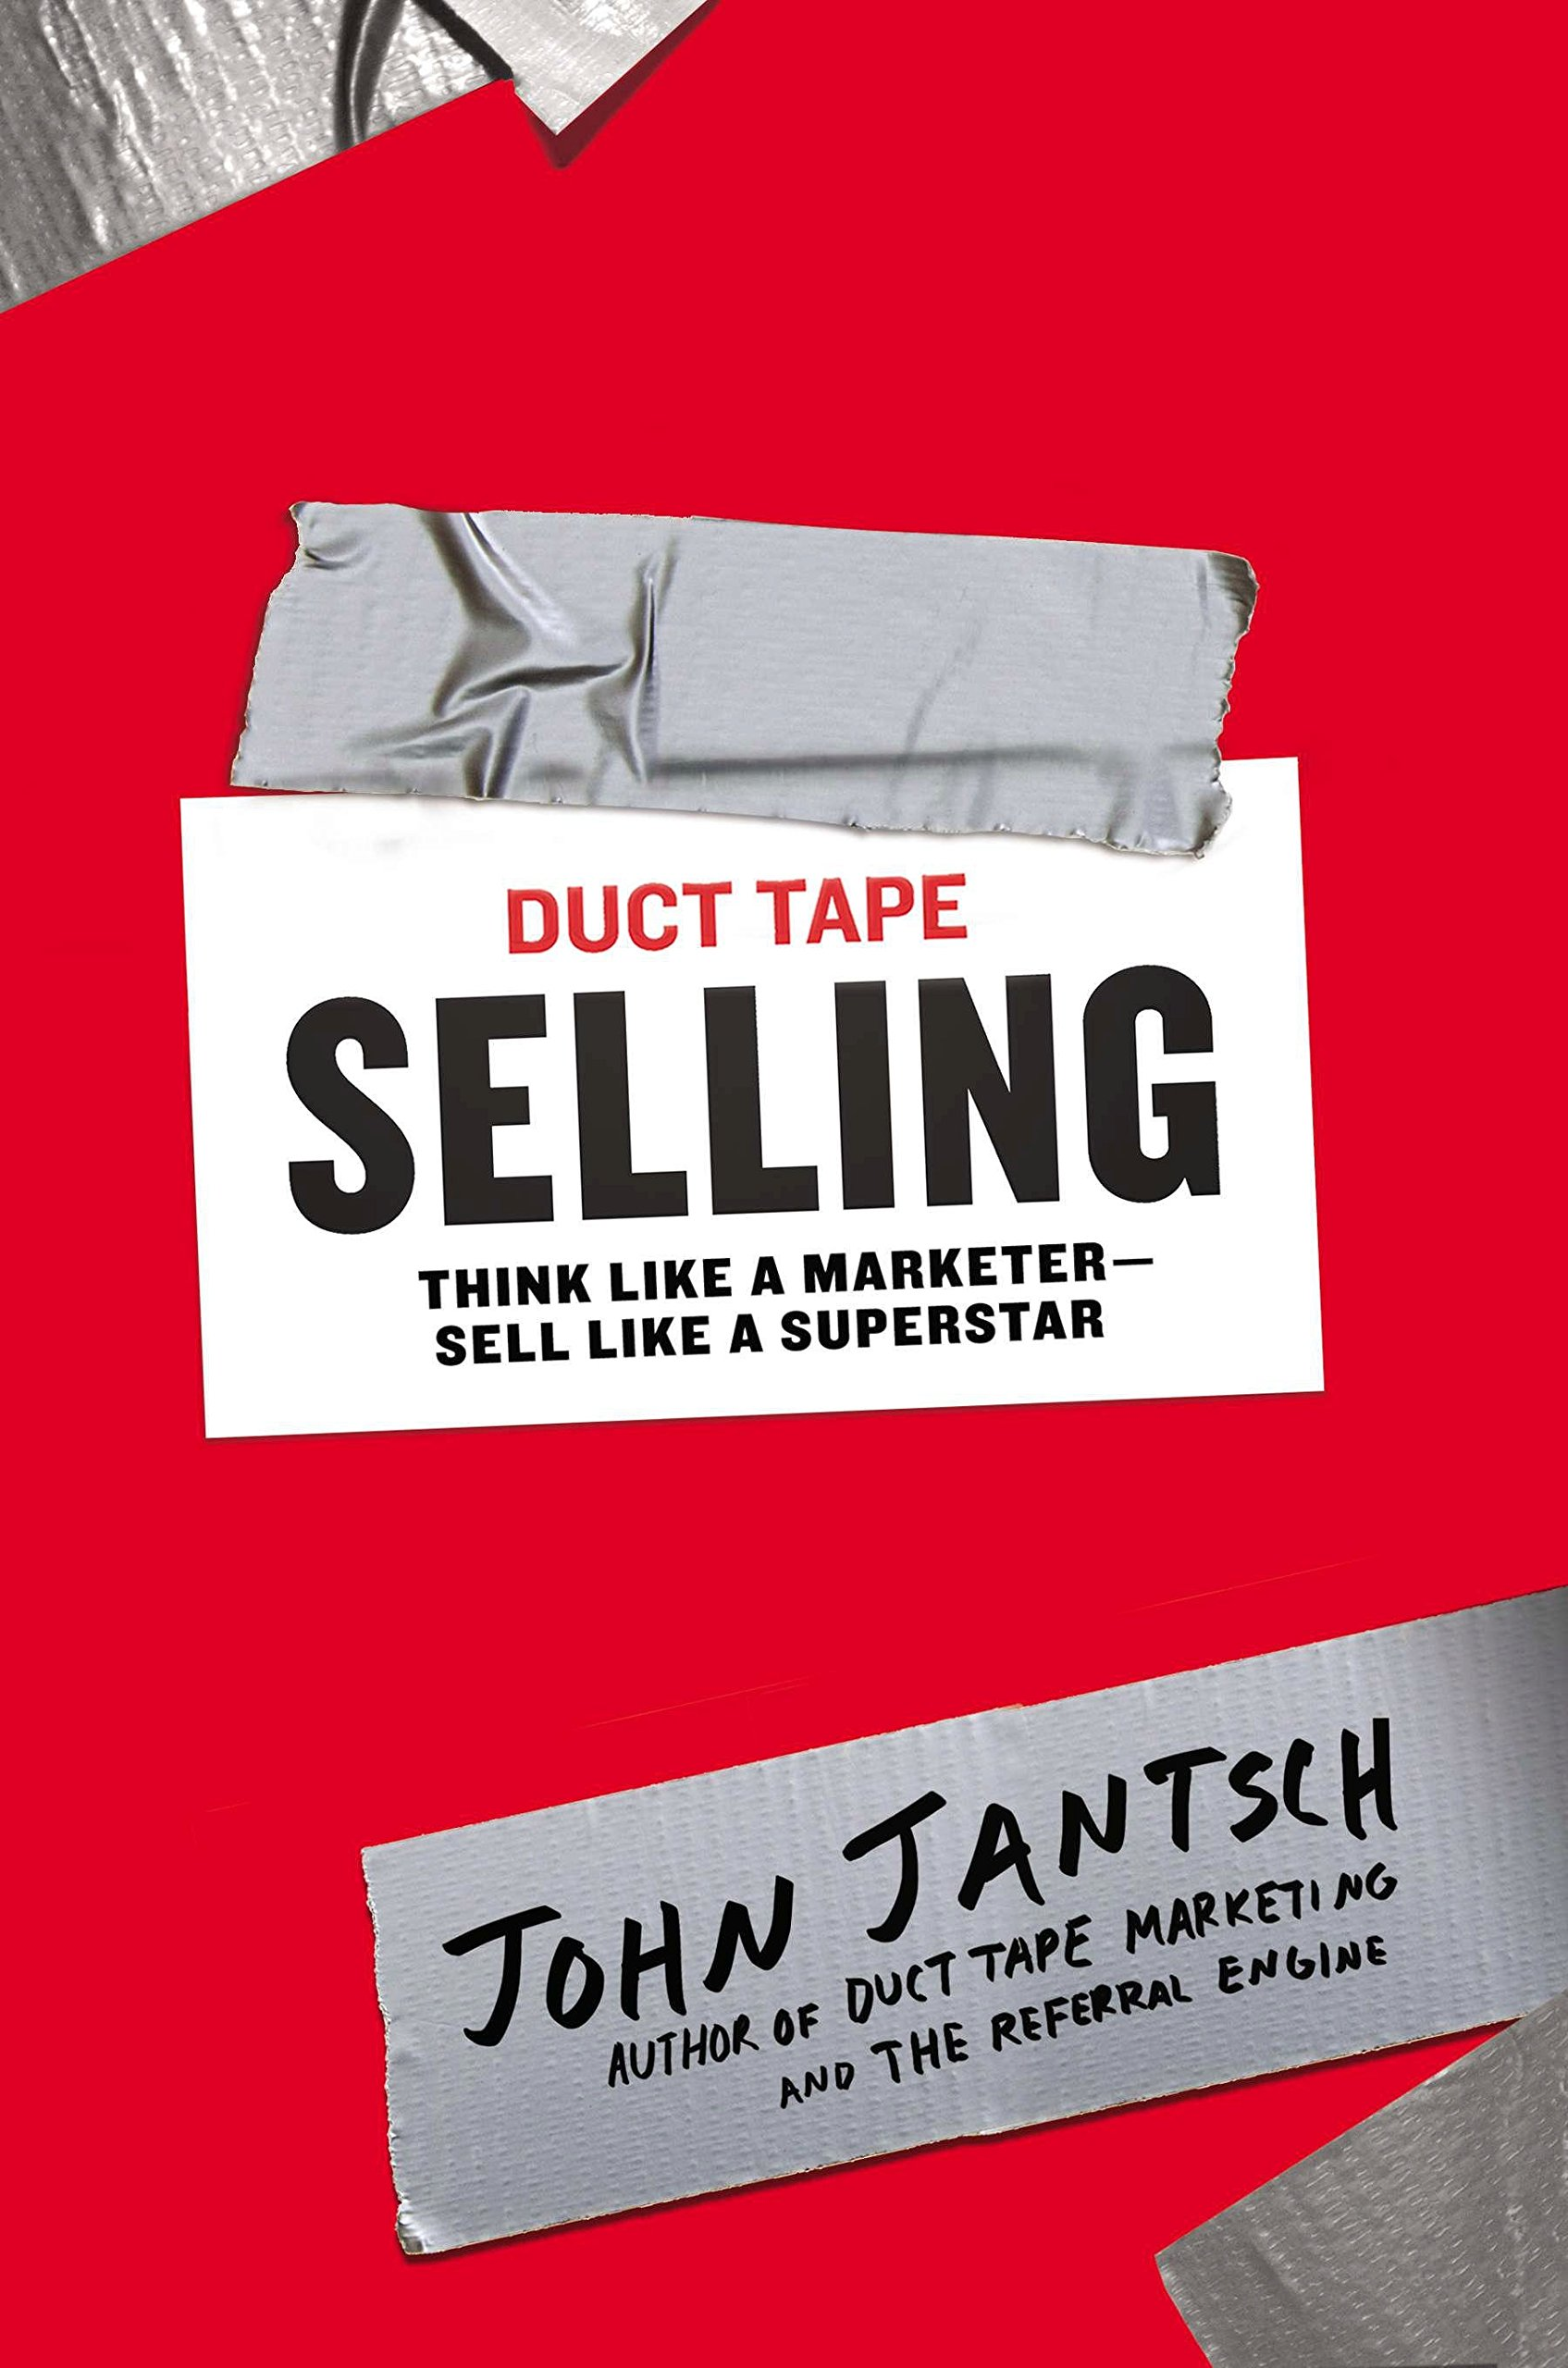 Duct Tape Selling: Think Like a Marketer-Sell Like a Superstar: John Jantsch:  9781591846338: Amazon.com: Books